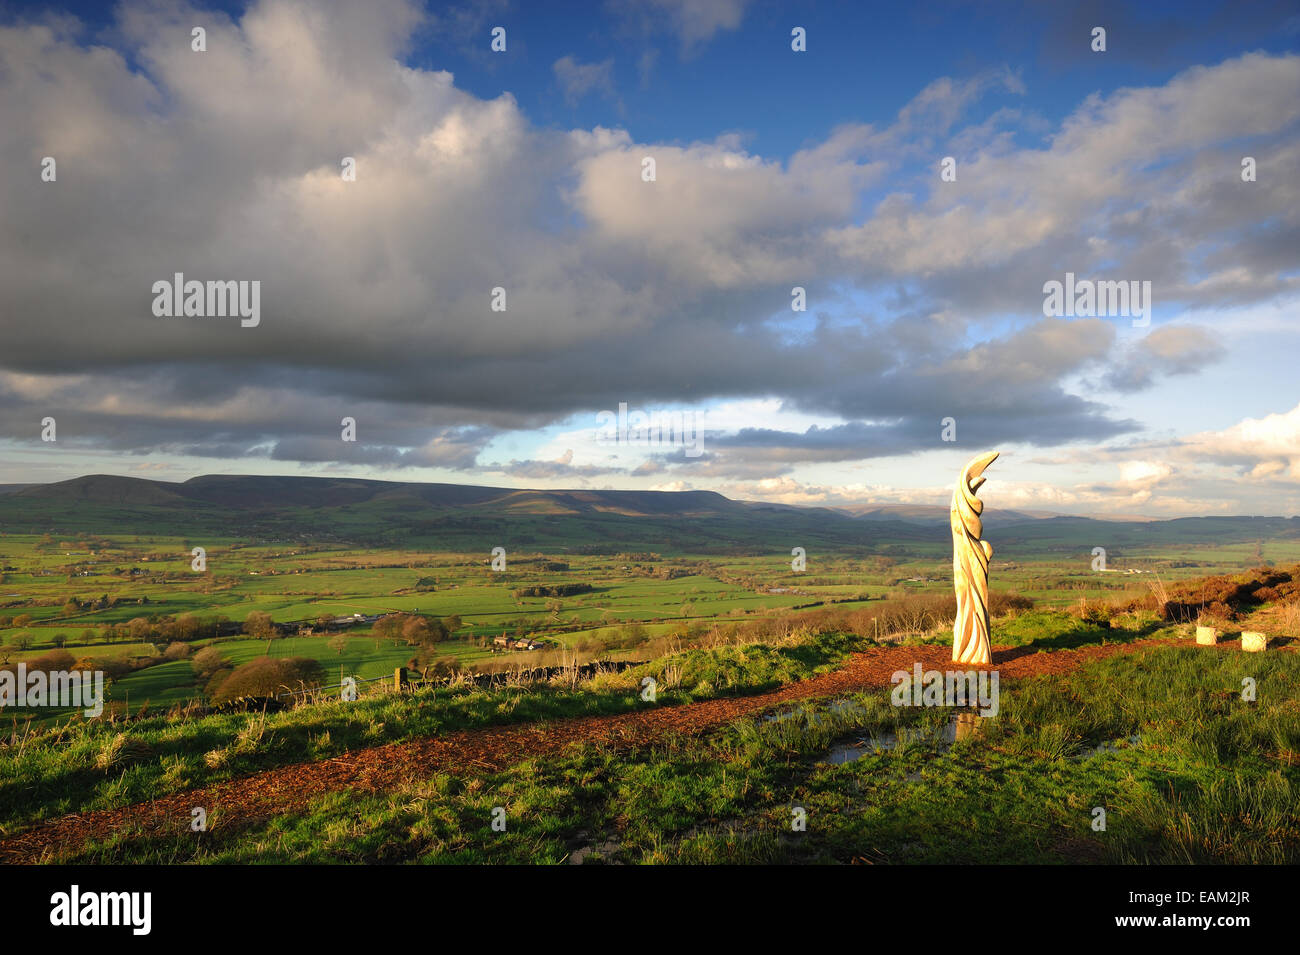 Halima Cassell sun catcher sculpture on jeffrey hill, longridge, in the forest of bowland - Stock Image